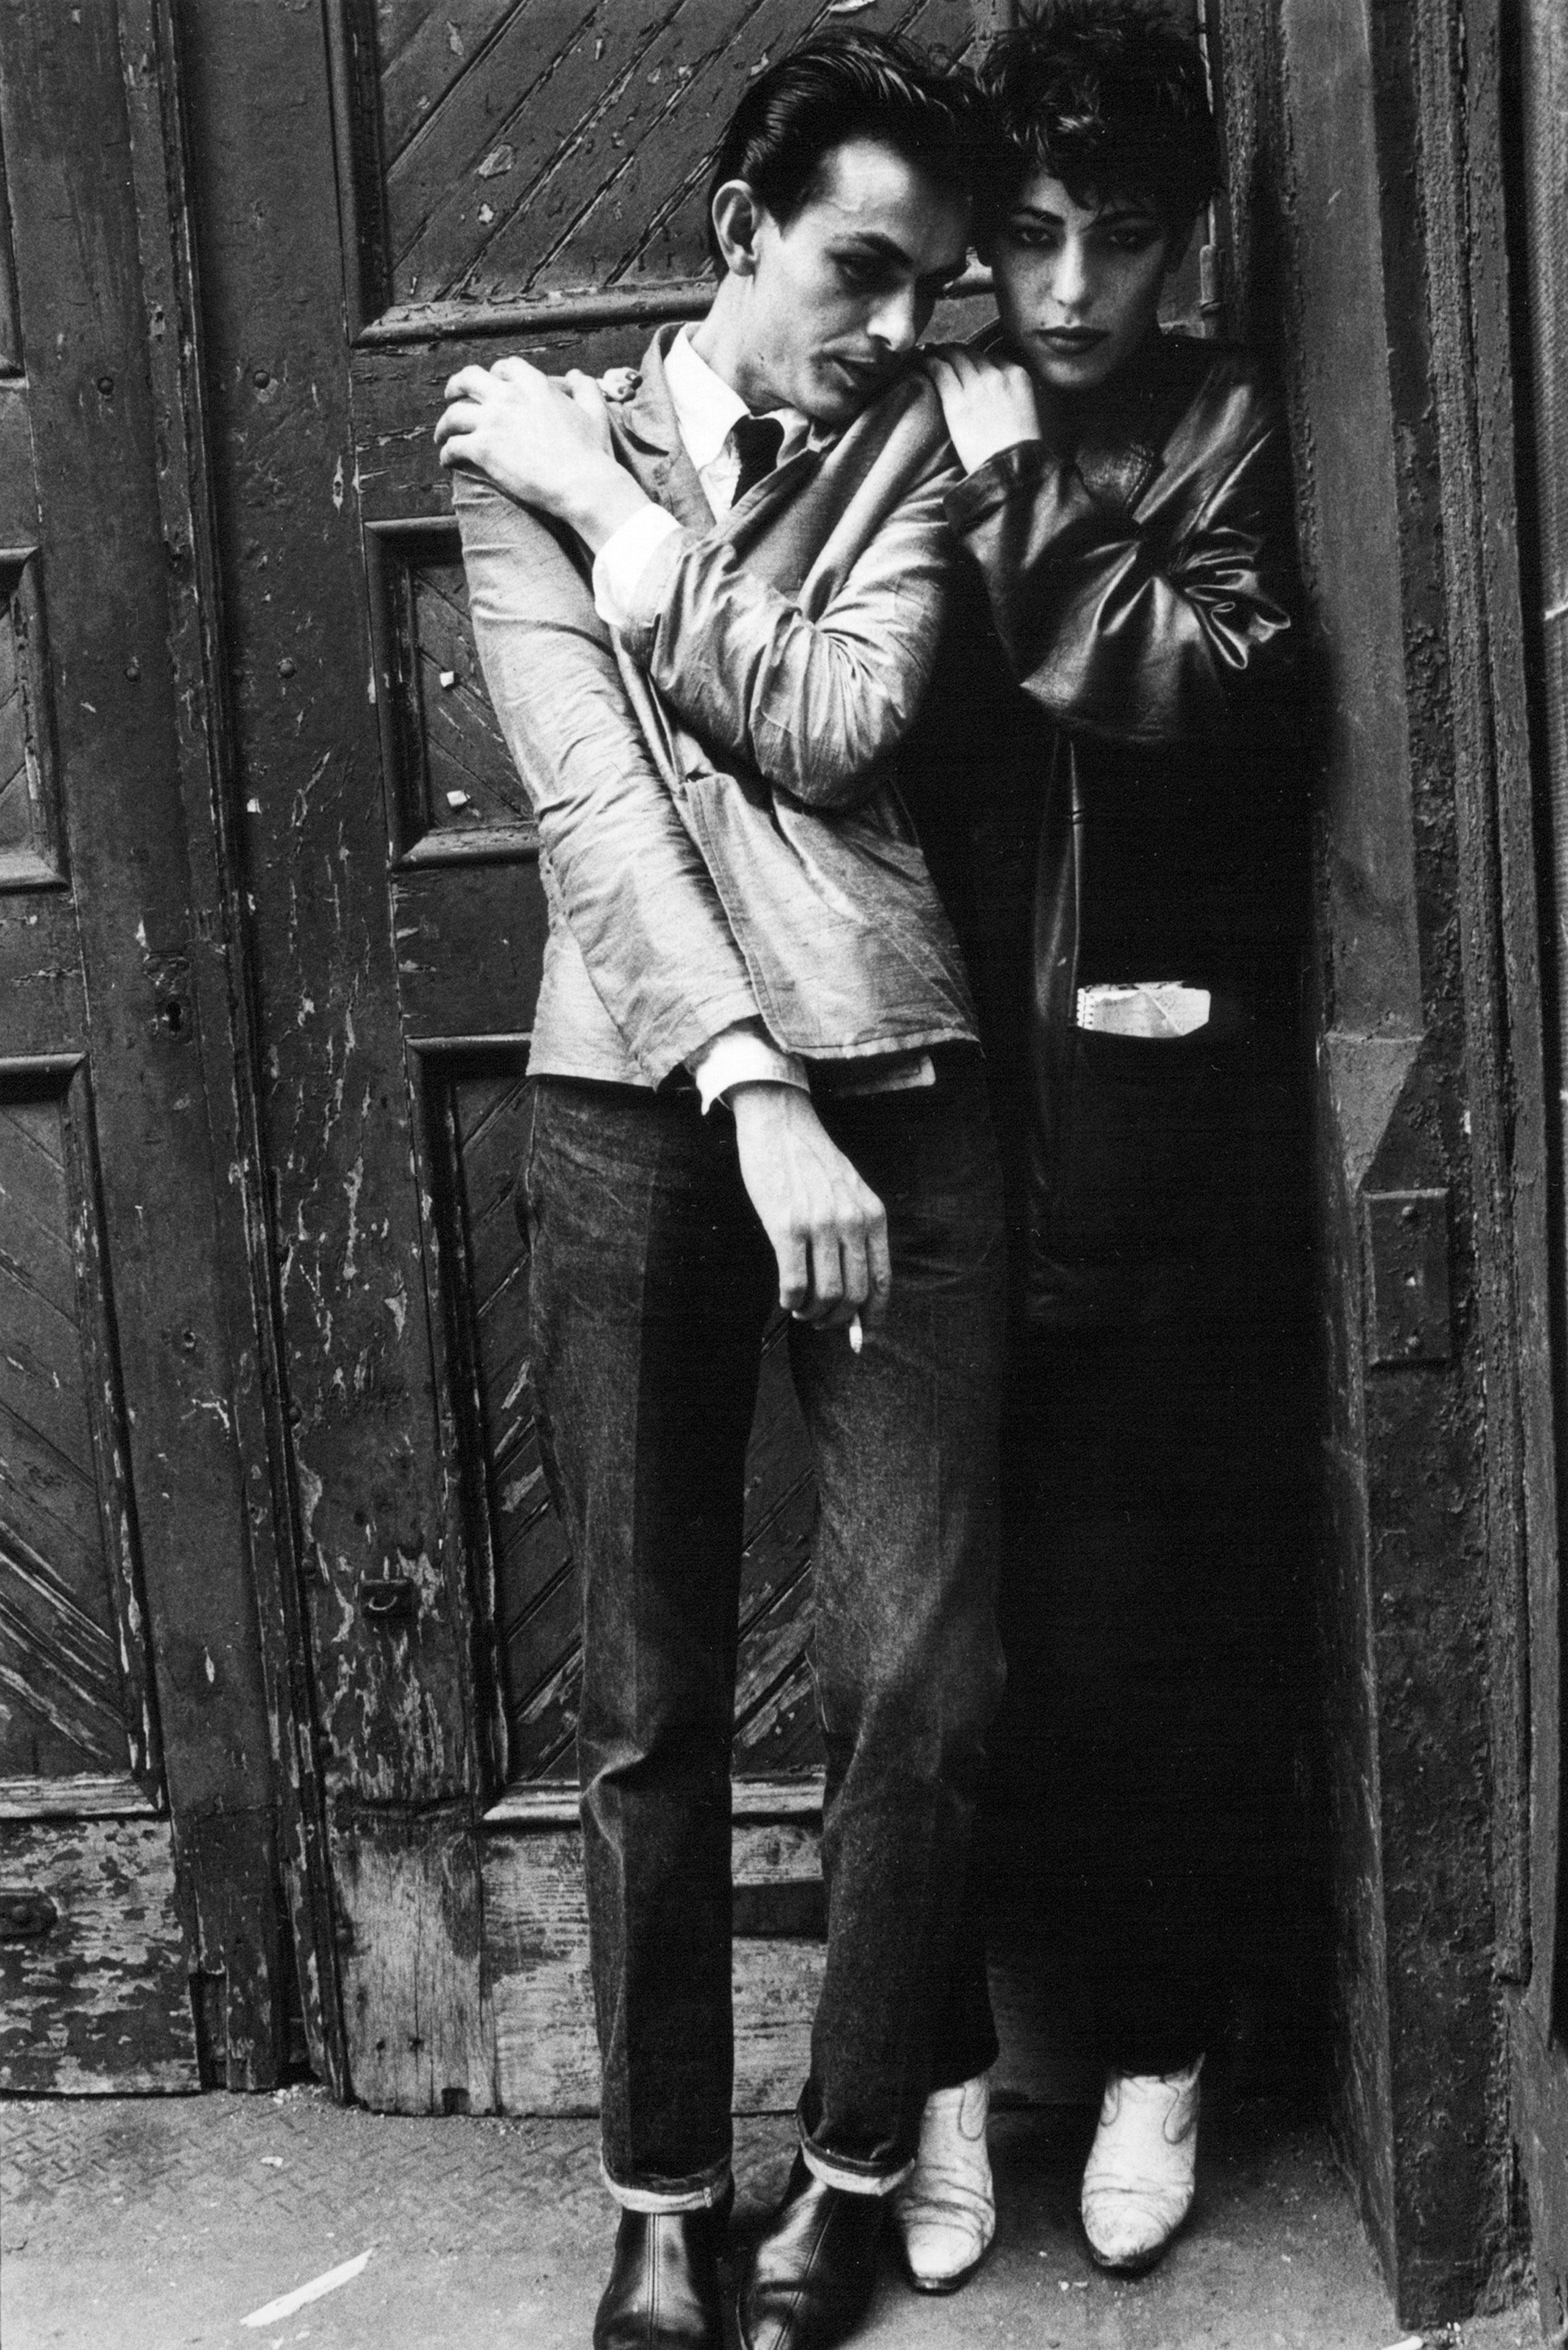 Doorway in SoHo, 1980